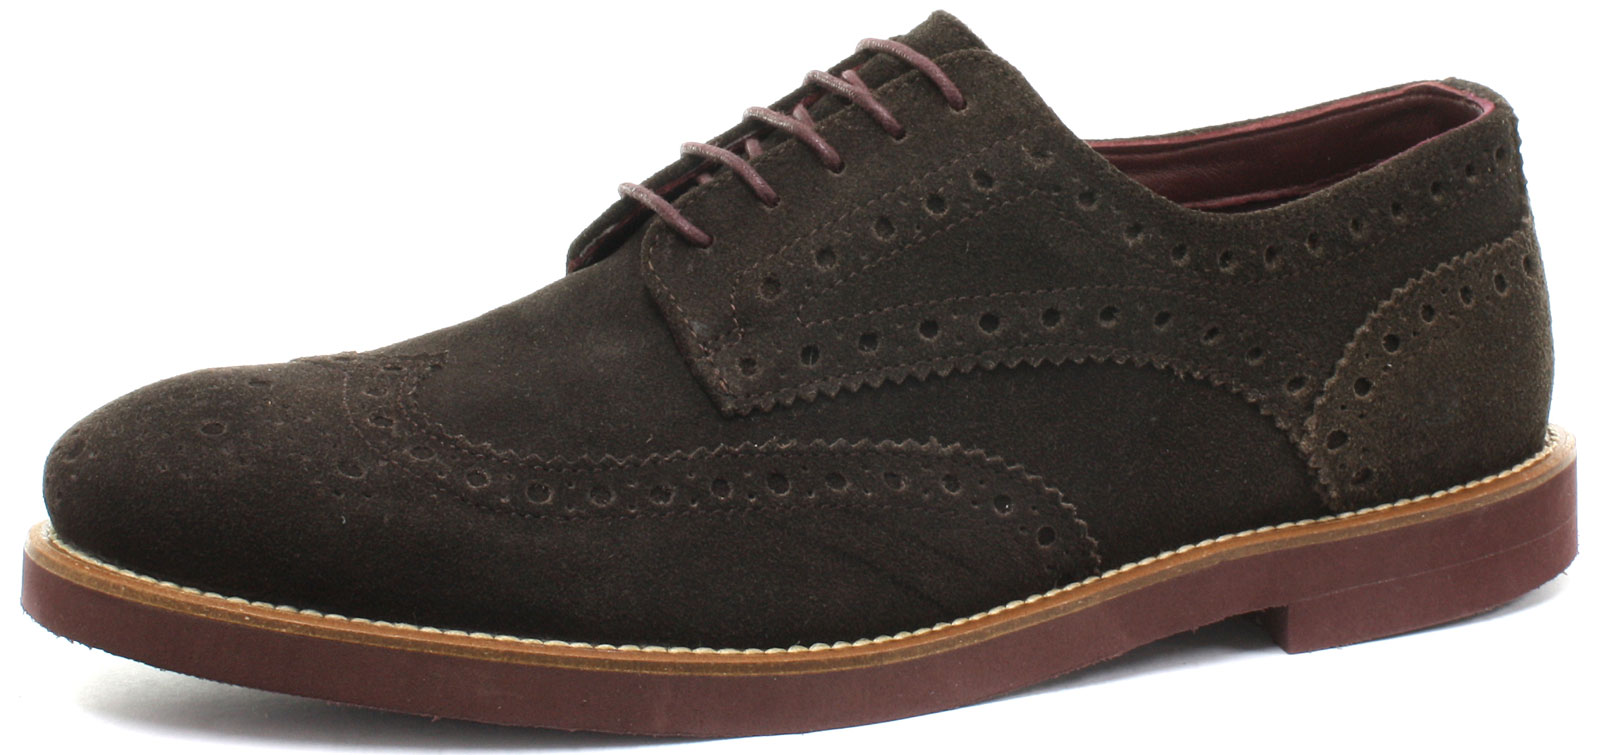 Details about MENS REAL SUEDE LEATHER BROGUE LACE UP CASUAL SMART OXFORD FORMAL SHOES SIZE. 15 viewed per day. MENS REAL SUEDE LEATHER BROGUE LACE UP CASUAL SMART OXFORD FORMAL SHOES SIZE | Add to watch list. Find out more about the Top-Rated Seller program - opens in a new window or tab.